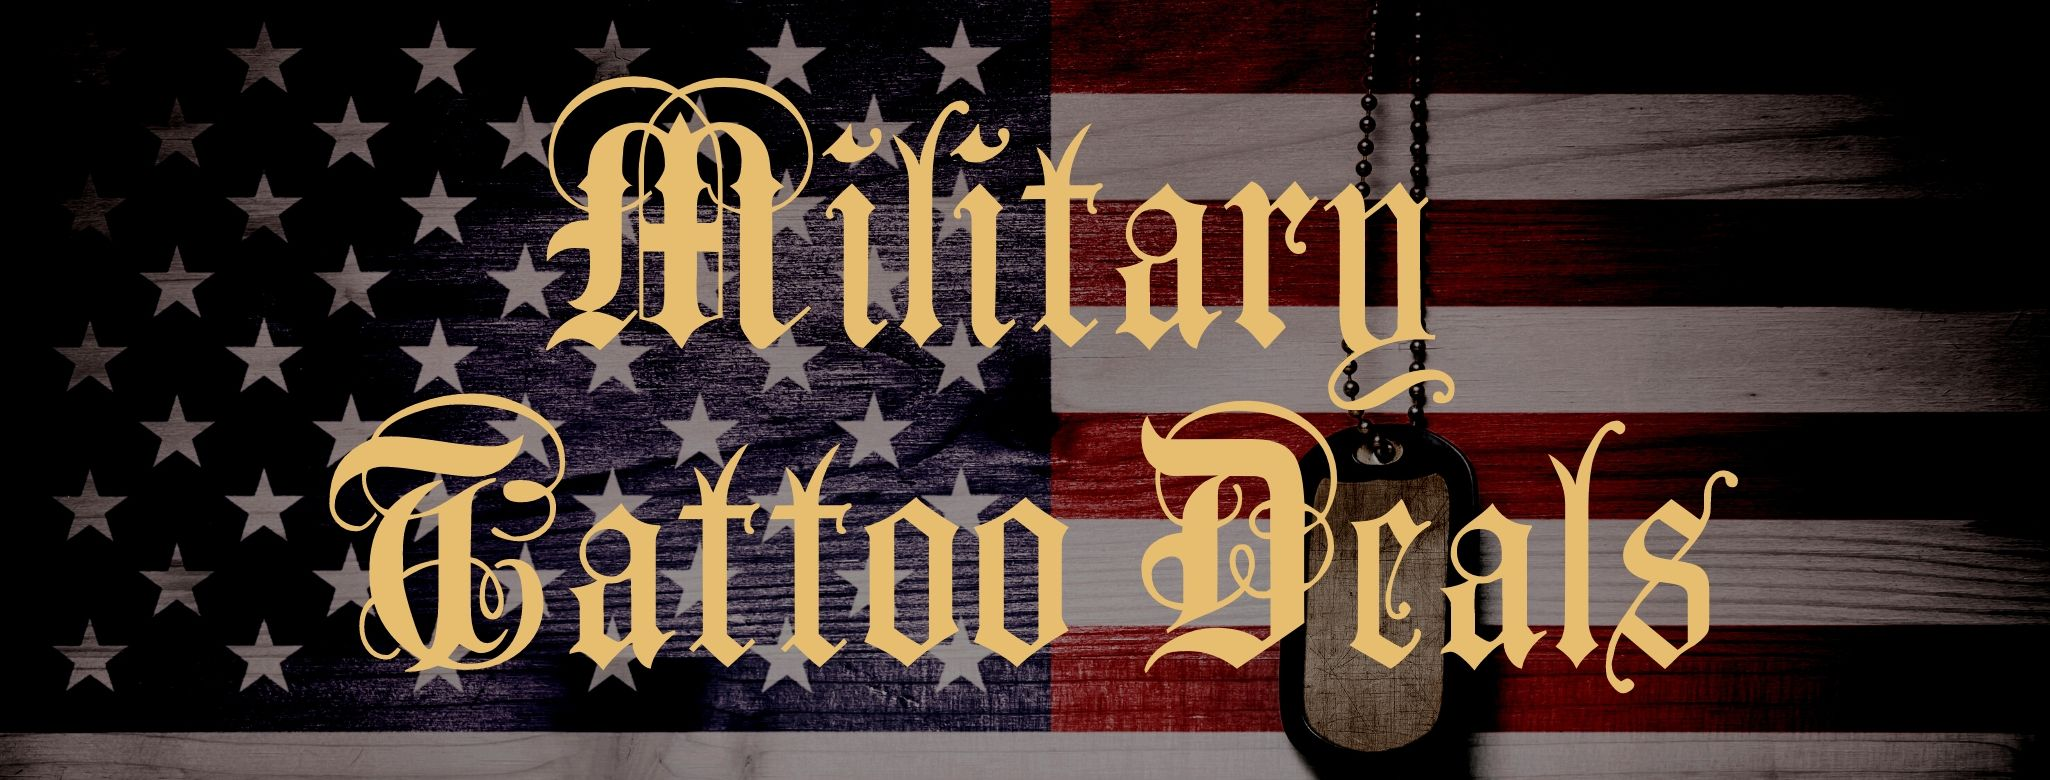 Military tattoo deals